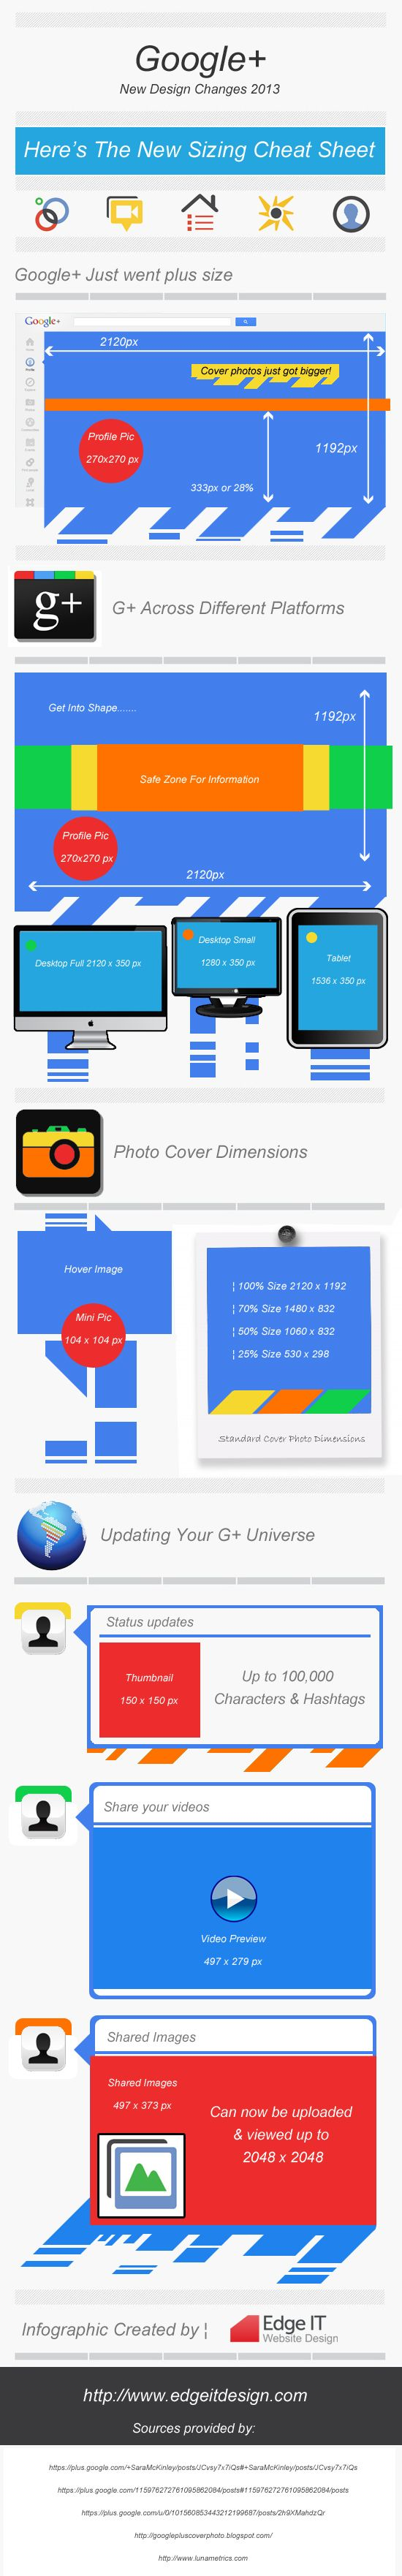 Design Cheat Sheet For Google+ In 2013 [infographic]